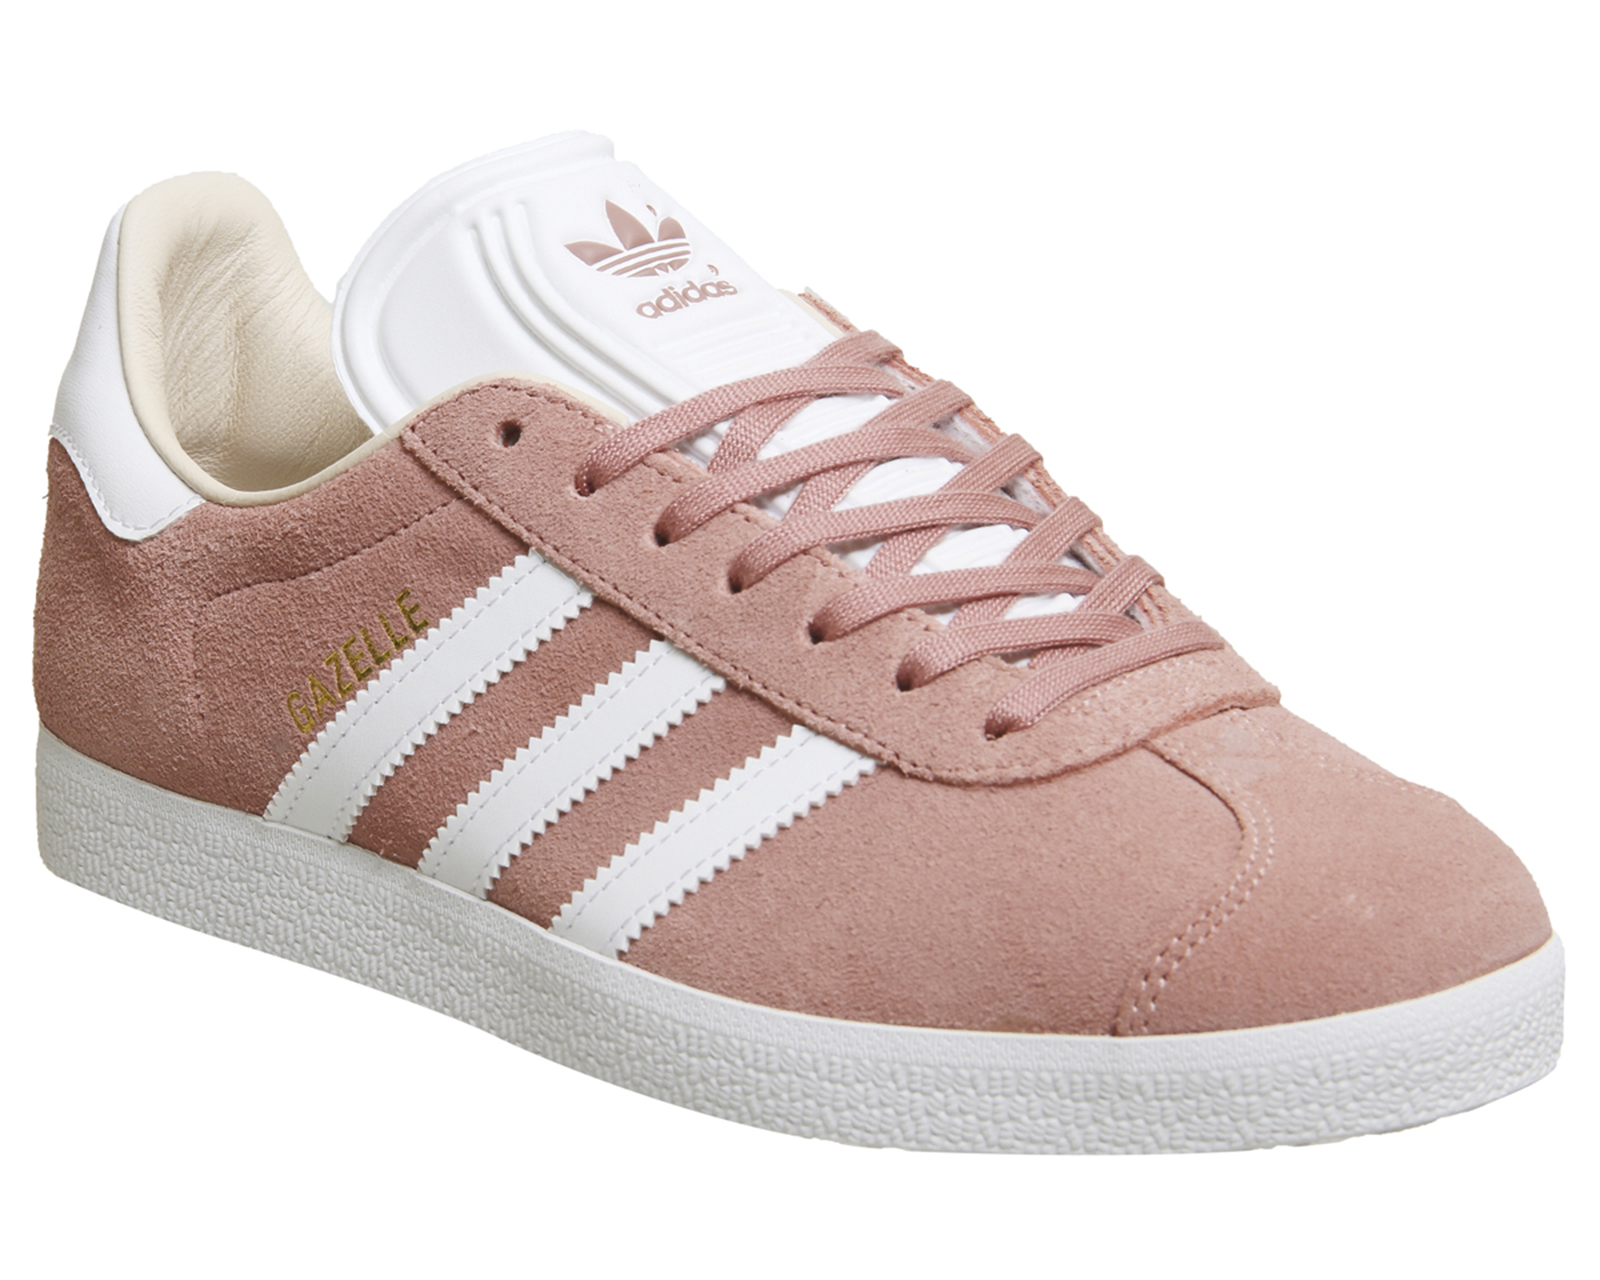 buy popular 79ff9 9e1ff Sentinel Womens Adidas Gazelle Trainers ASH PEARL WHITE Trainers Shoes.  Sentinel Thumbnail 2